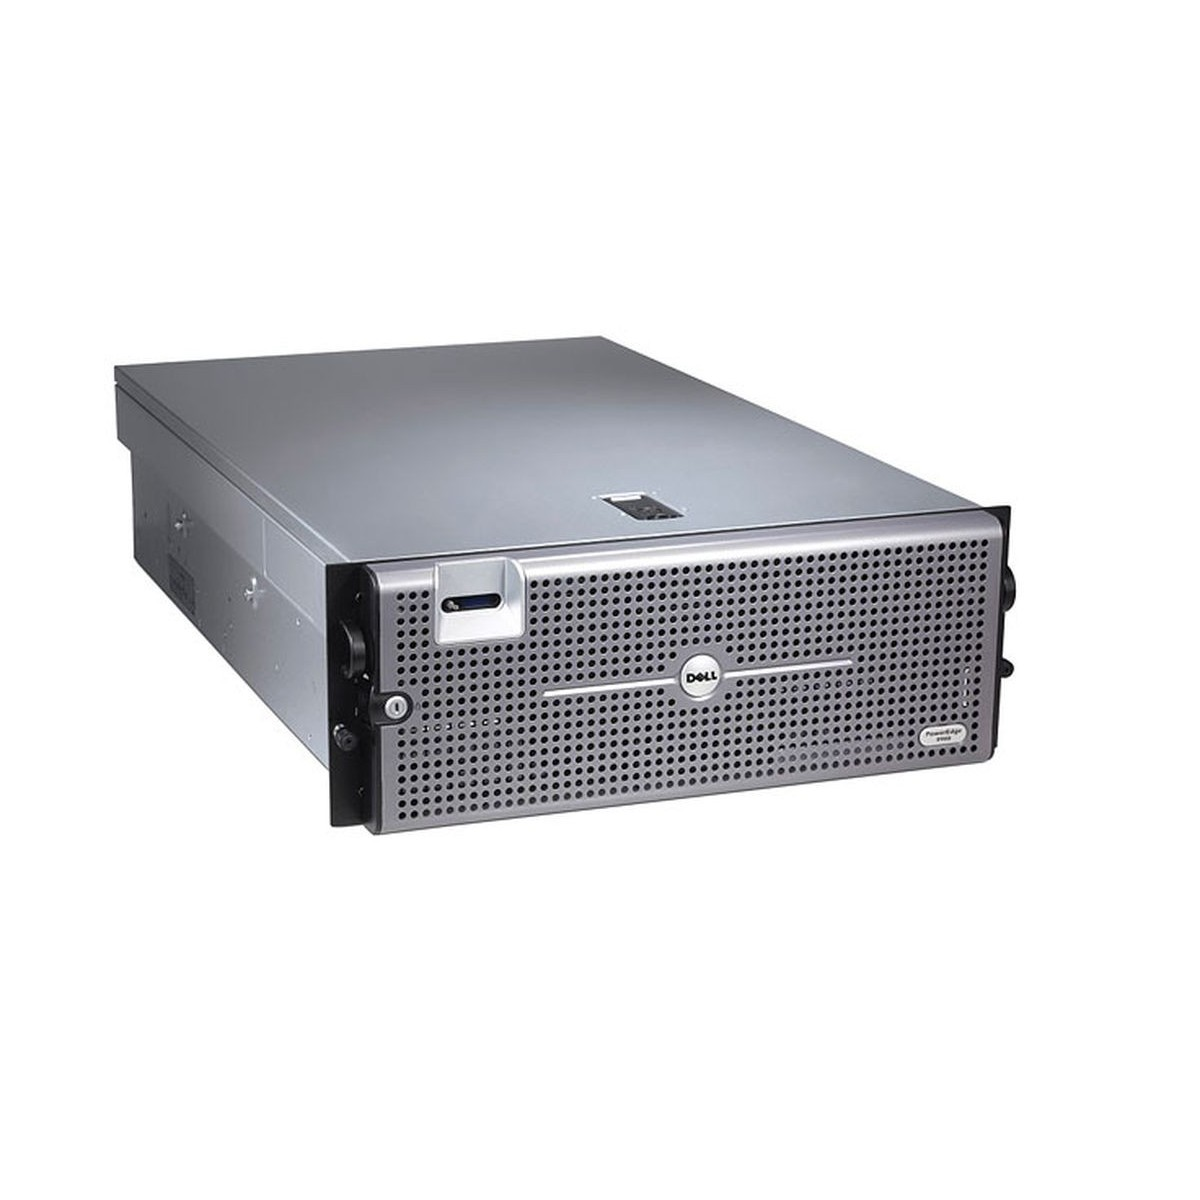 ZASILACZ 717W DELL POWEREDGE R610 0RN442